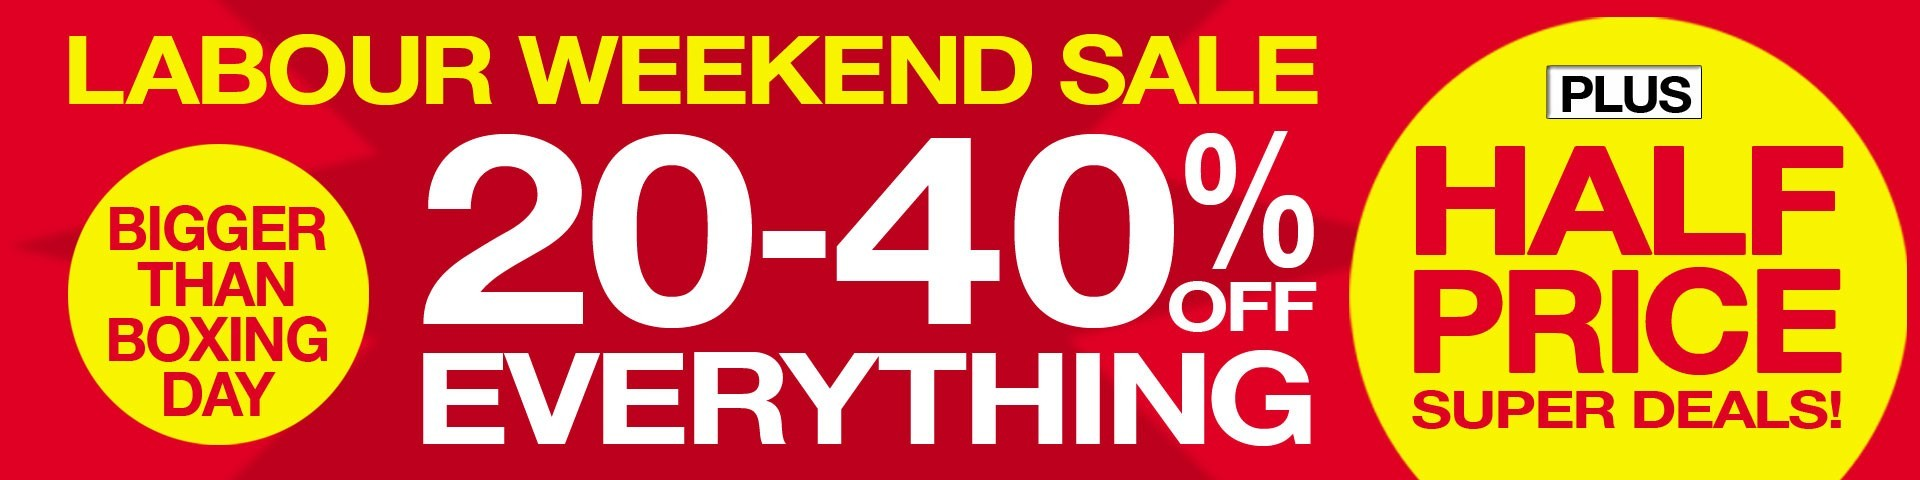 20 50 Off Everything Labour Weekend Sale Target Furniture Nz